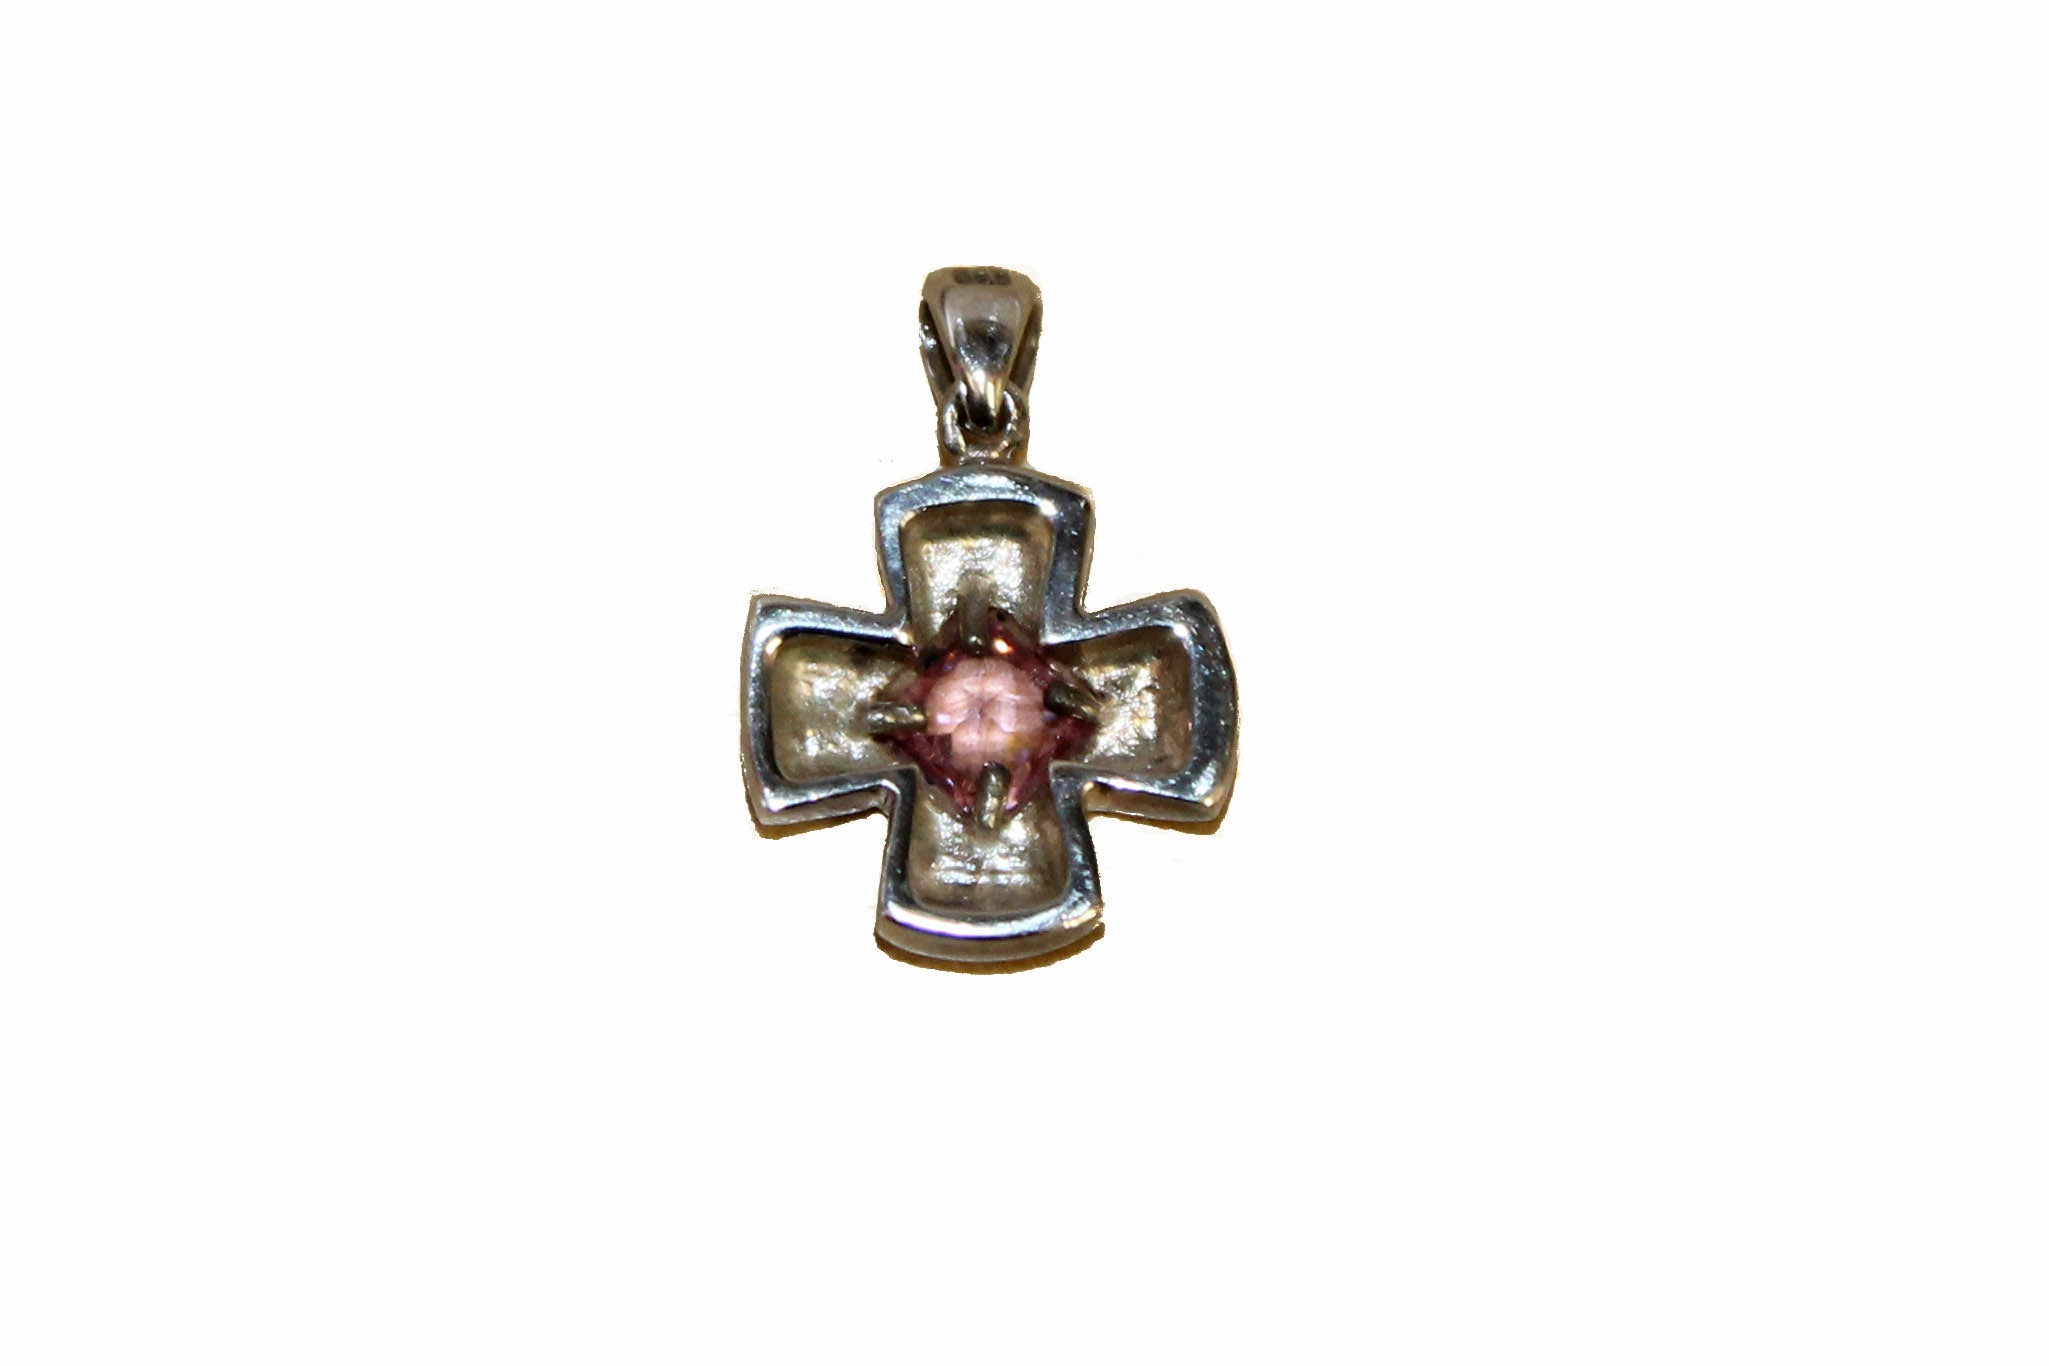 Authentic Folli Follie Sterling Silver Cross Pendant